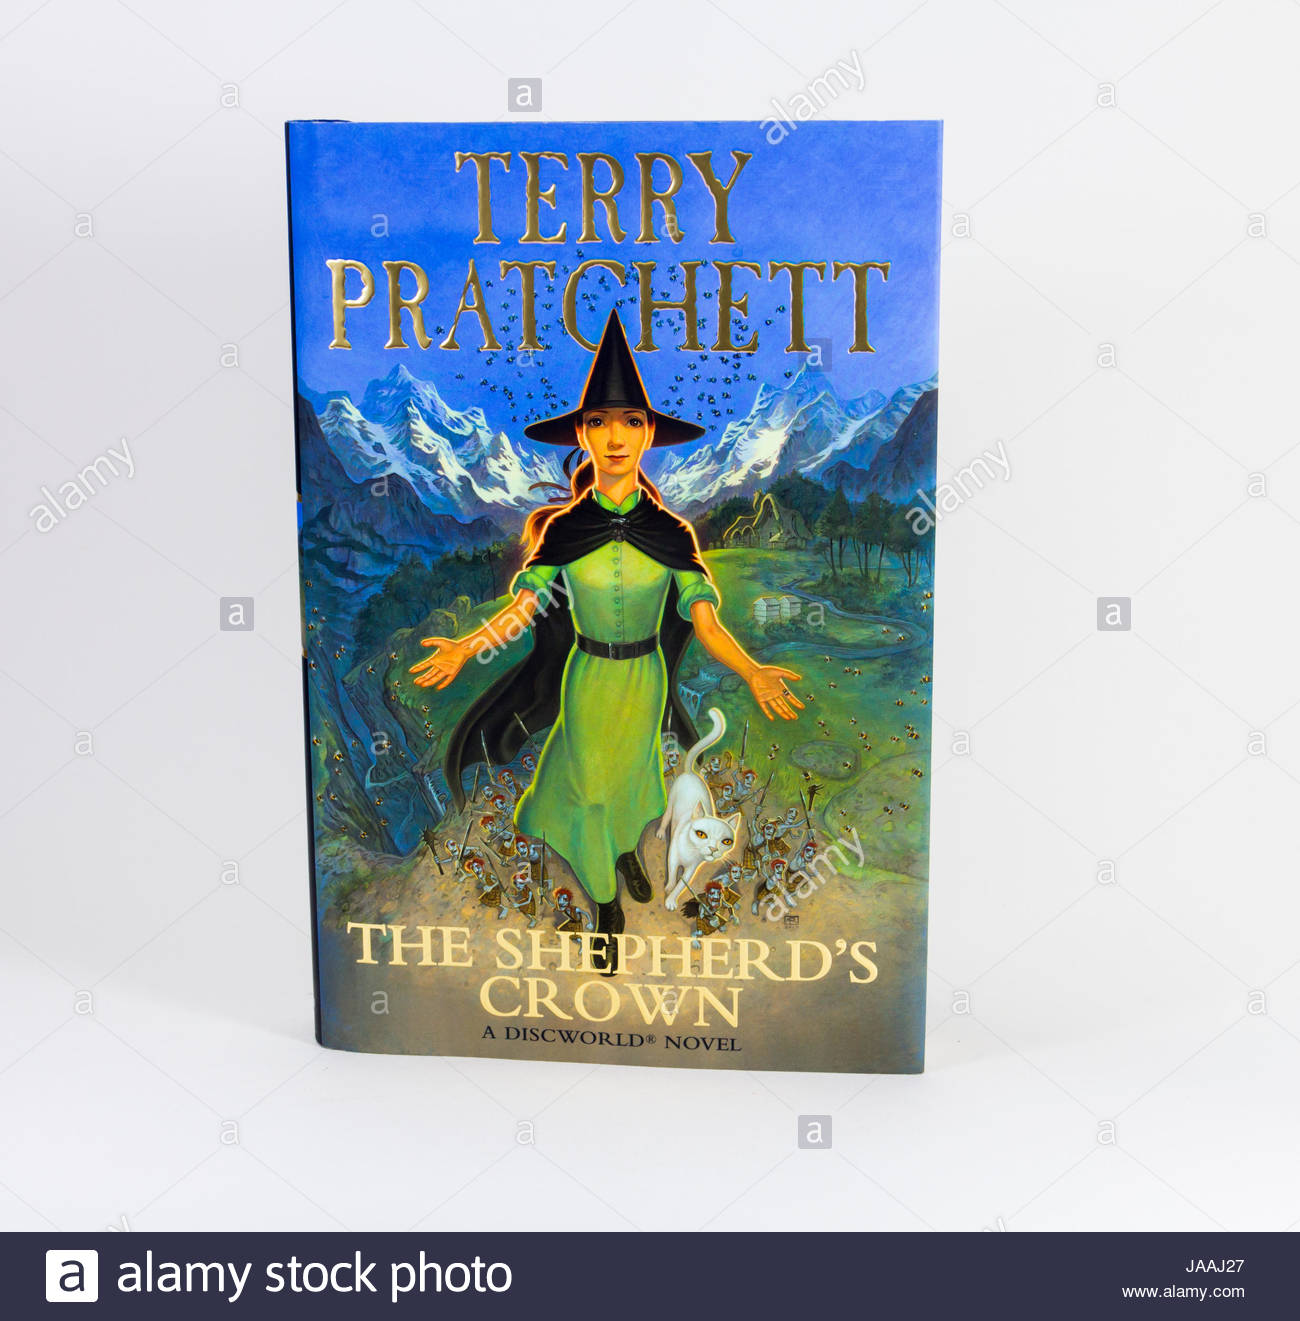 Hardback book with dustjacket of 'The Shepherd's Crown', the fantasy genre  book by Terry Pratchett - Stock Image